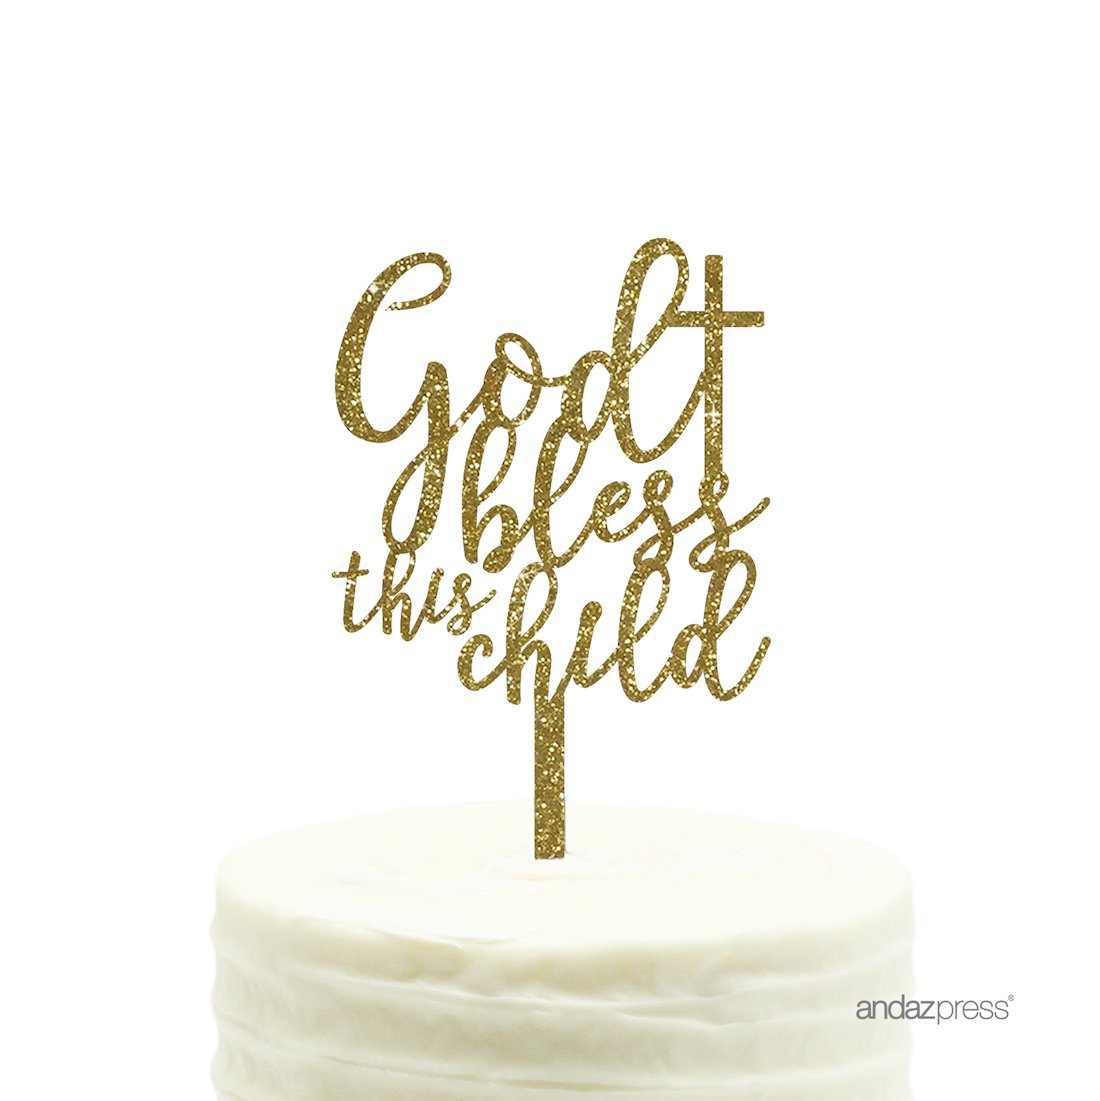 Andaz Press Baby Baptism Acrylic Cake Toppers, Gold Glitter, Bless This Child, 1-Pack by Andaz Press